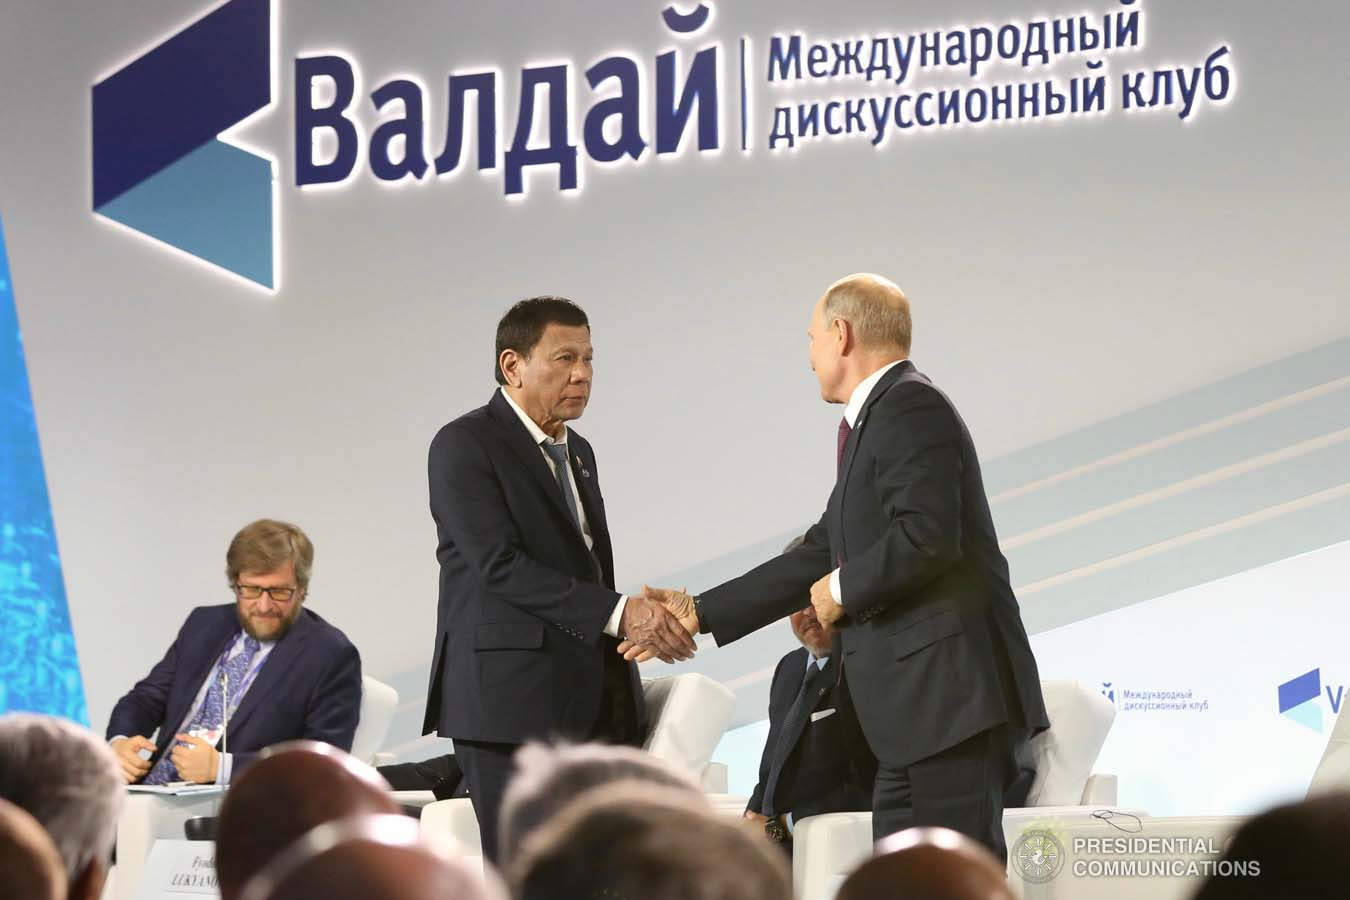 President Rodrigo Roa Duterte is greeted by Russian President Vladimir Putin after delivering his speech during the plenary session of the 16th Annual Meeting of the Valdai Discussion Club at the Polyana 1389 Hotel in Sochi, Russia on October 3, 2019. RICHARD MADELO/PRESIDENTIAL PHOTO